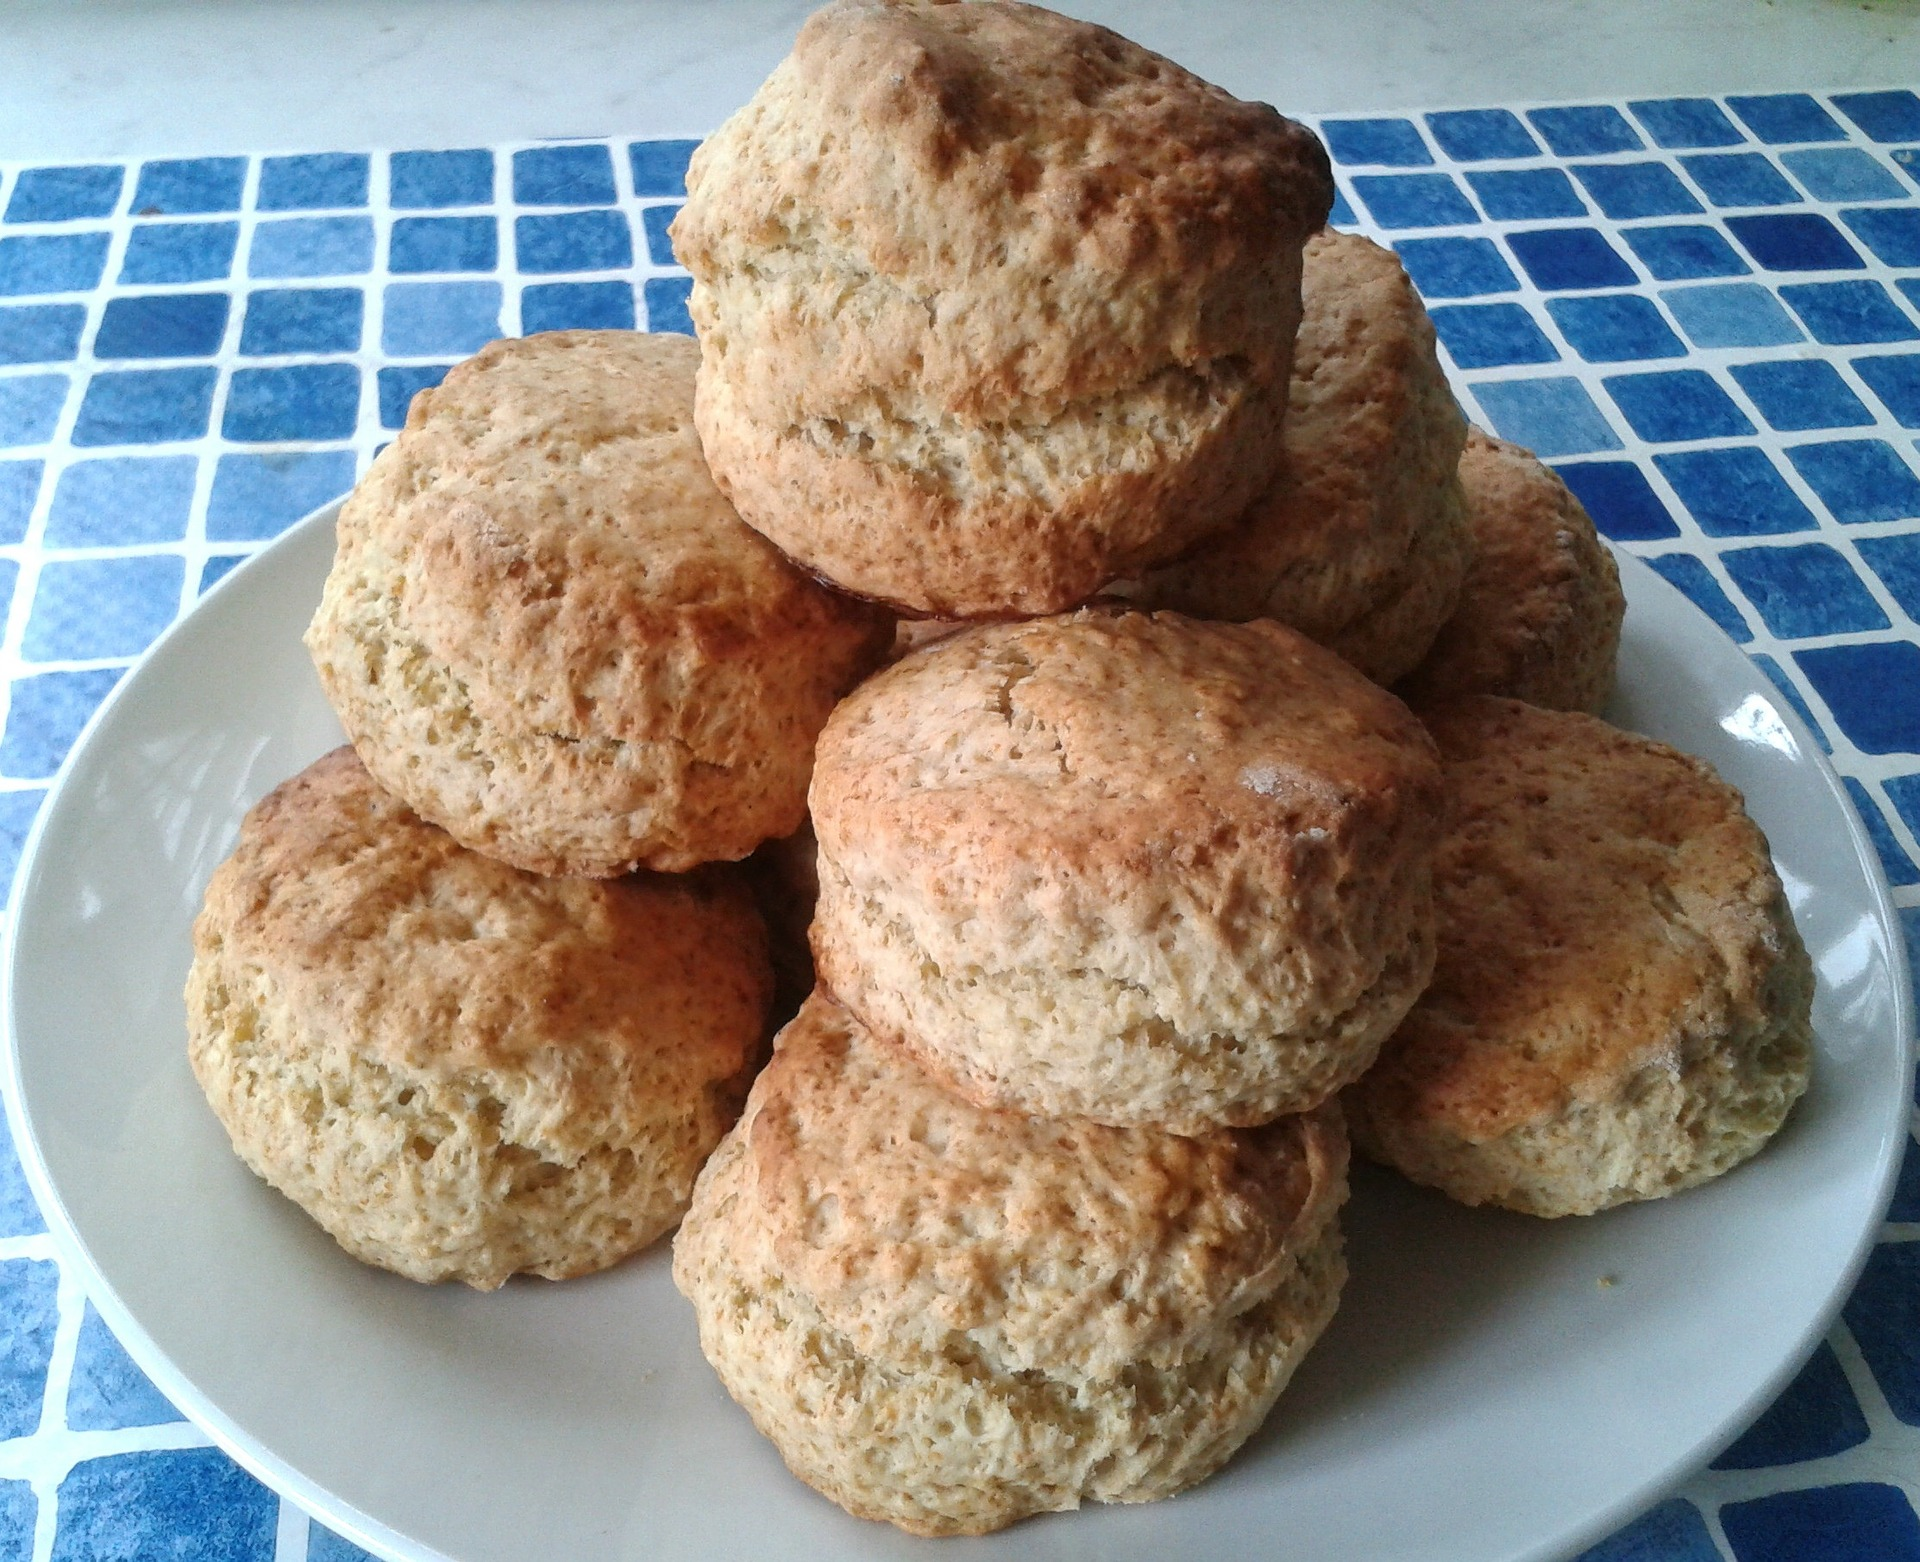 Homemade whole wheat brown scones